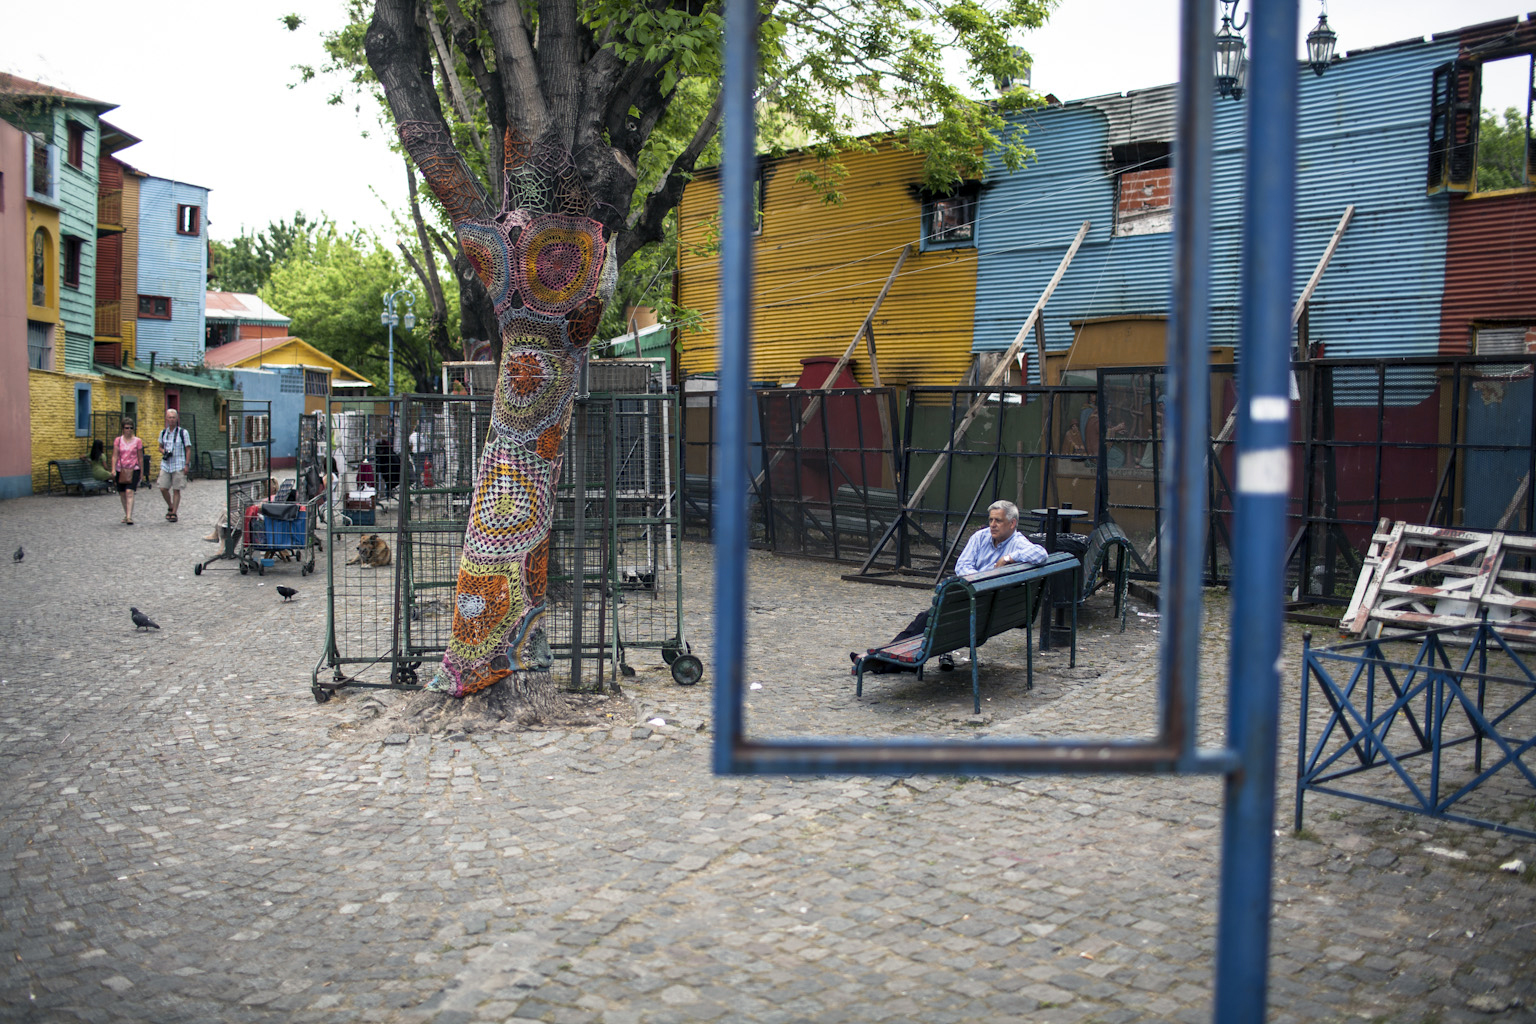 A man ponders on a bench in Caminito.